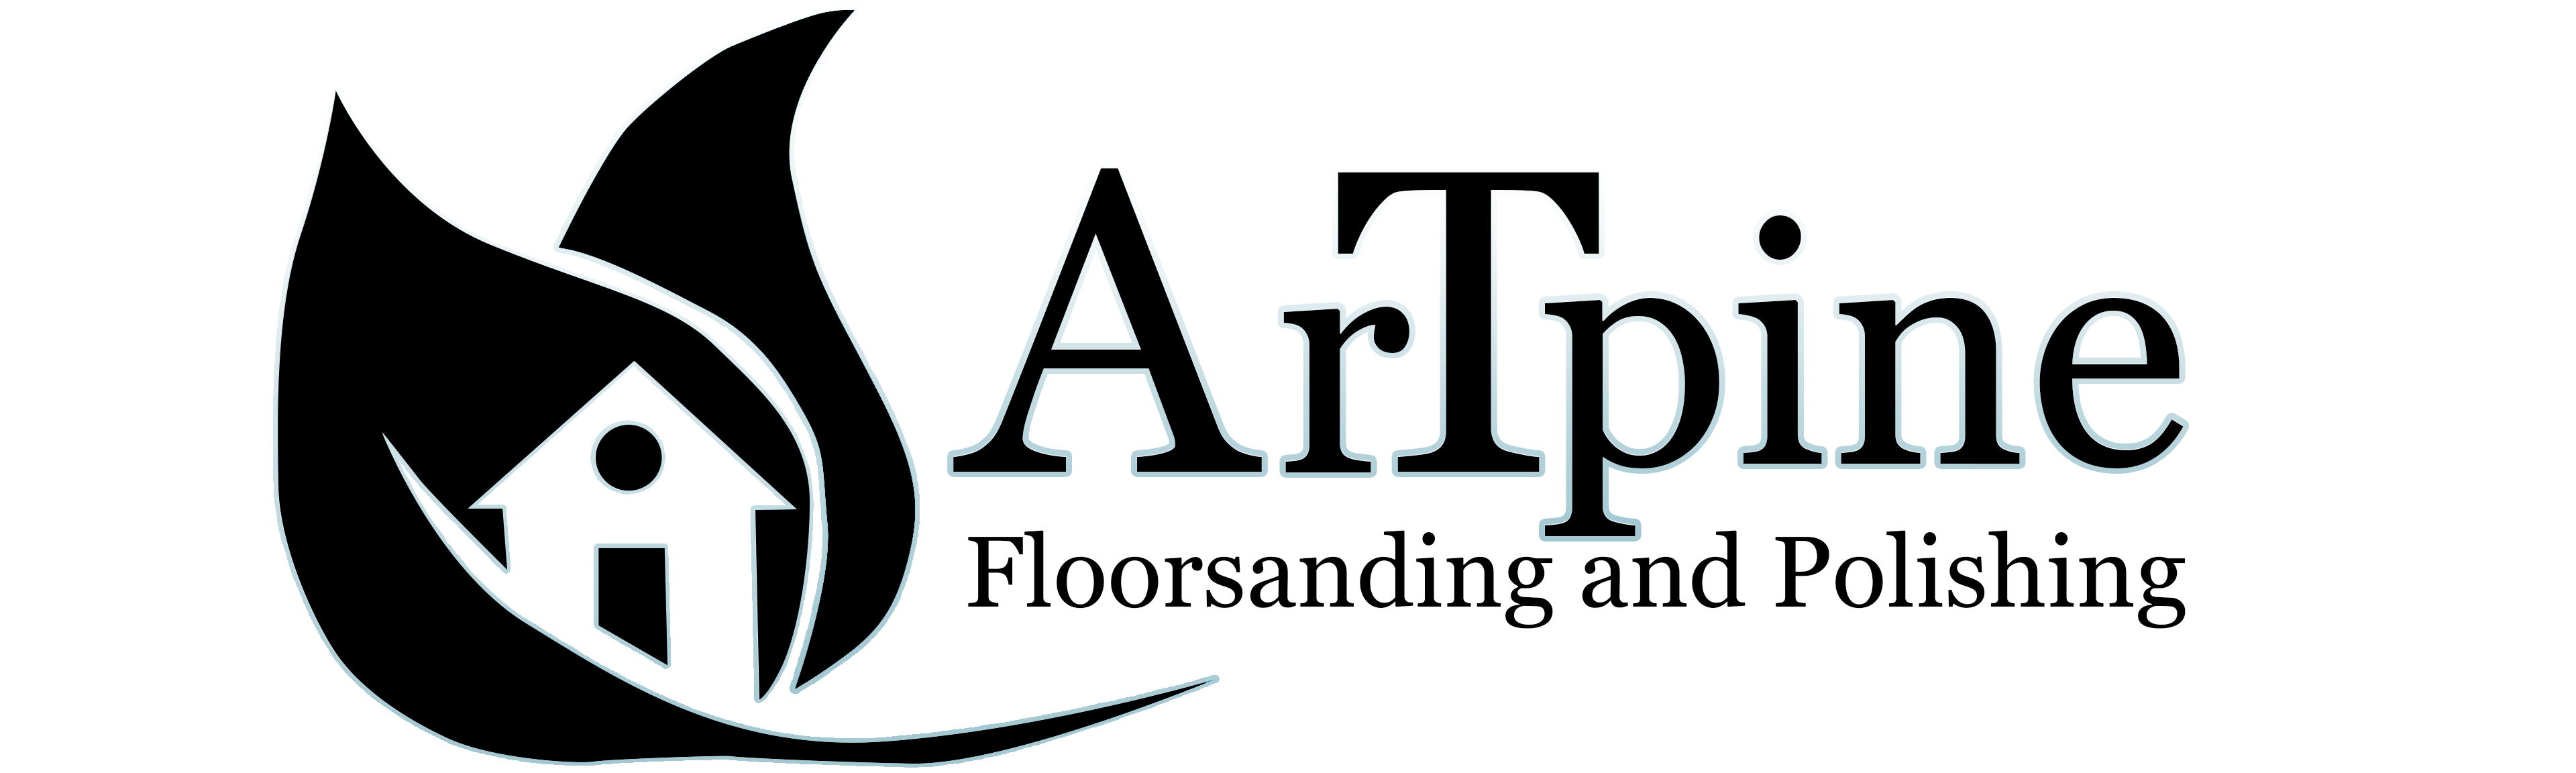 Artpine Floorsanding and Polishing